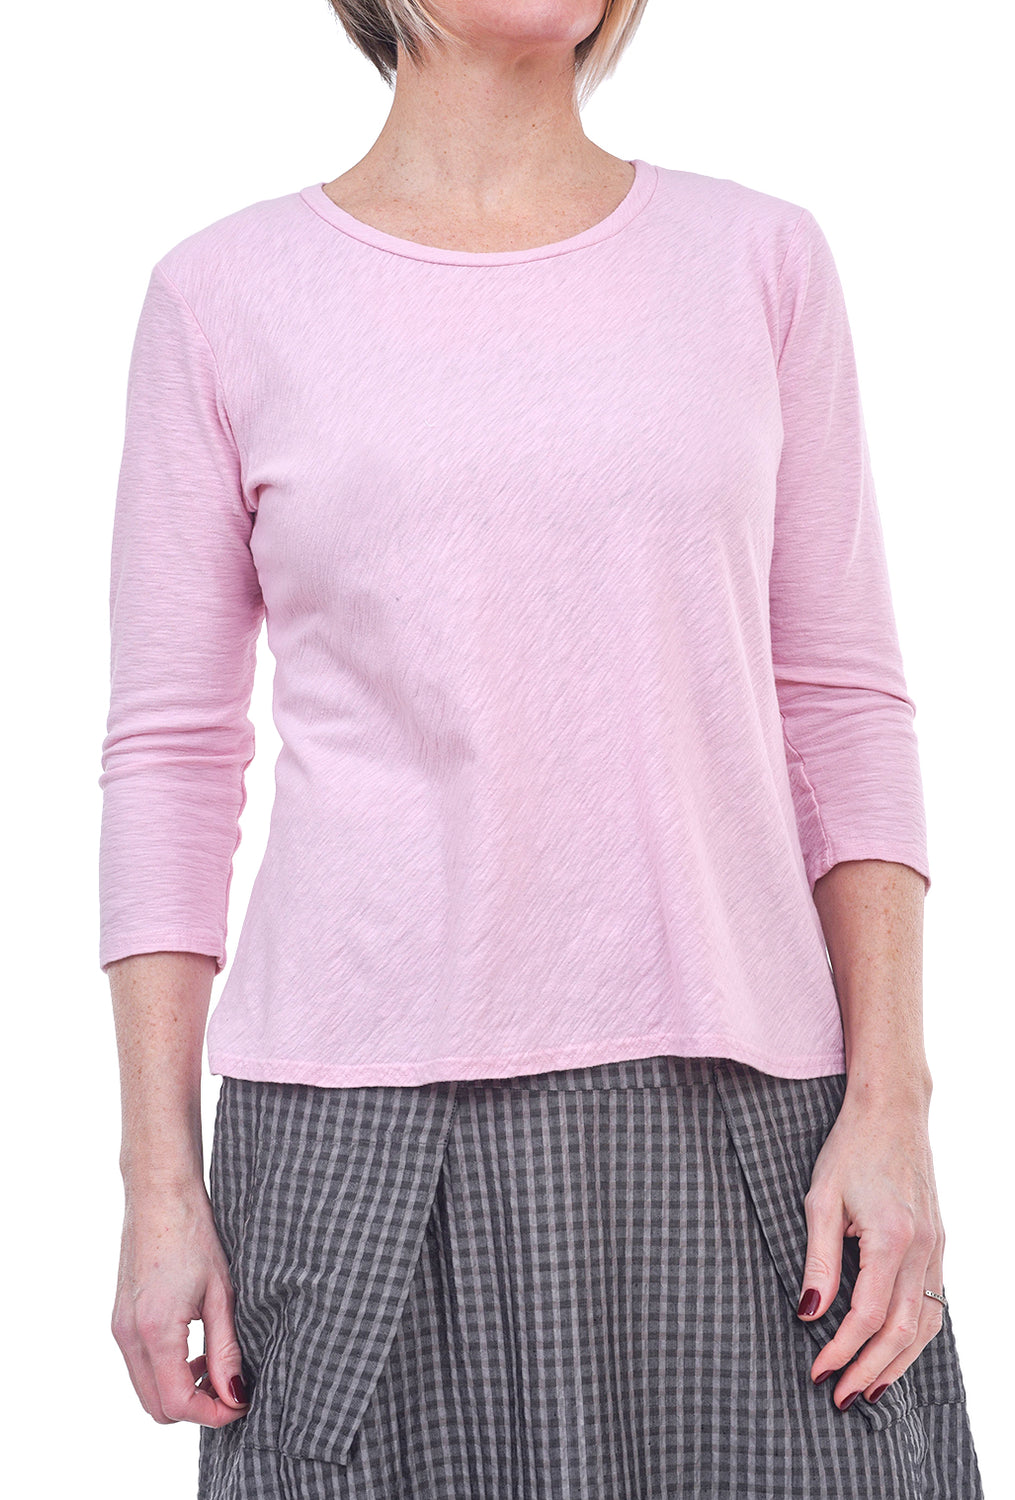 Cut Loose 3/4-Sleeve Bias Tee, Rosalie Pink